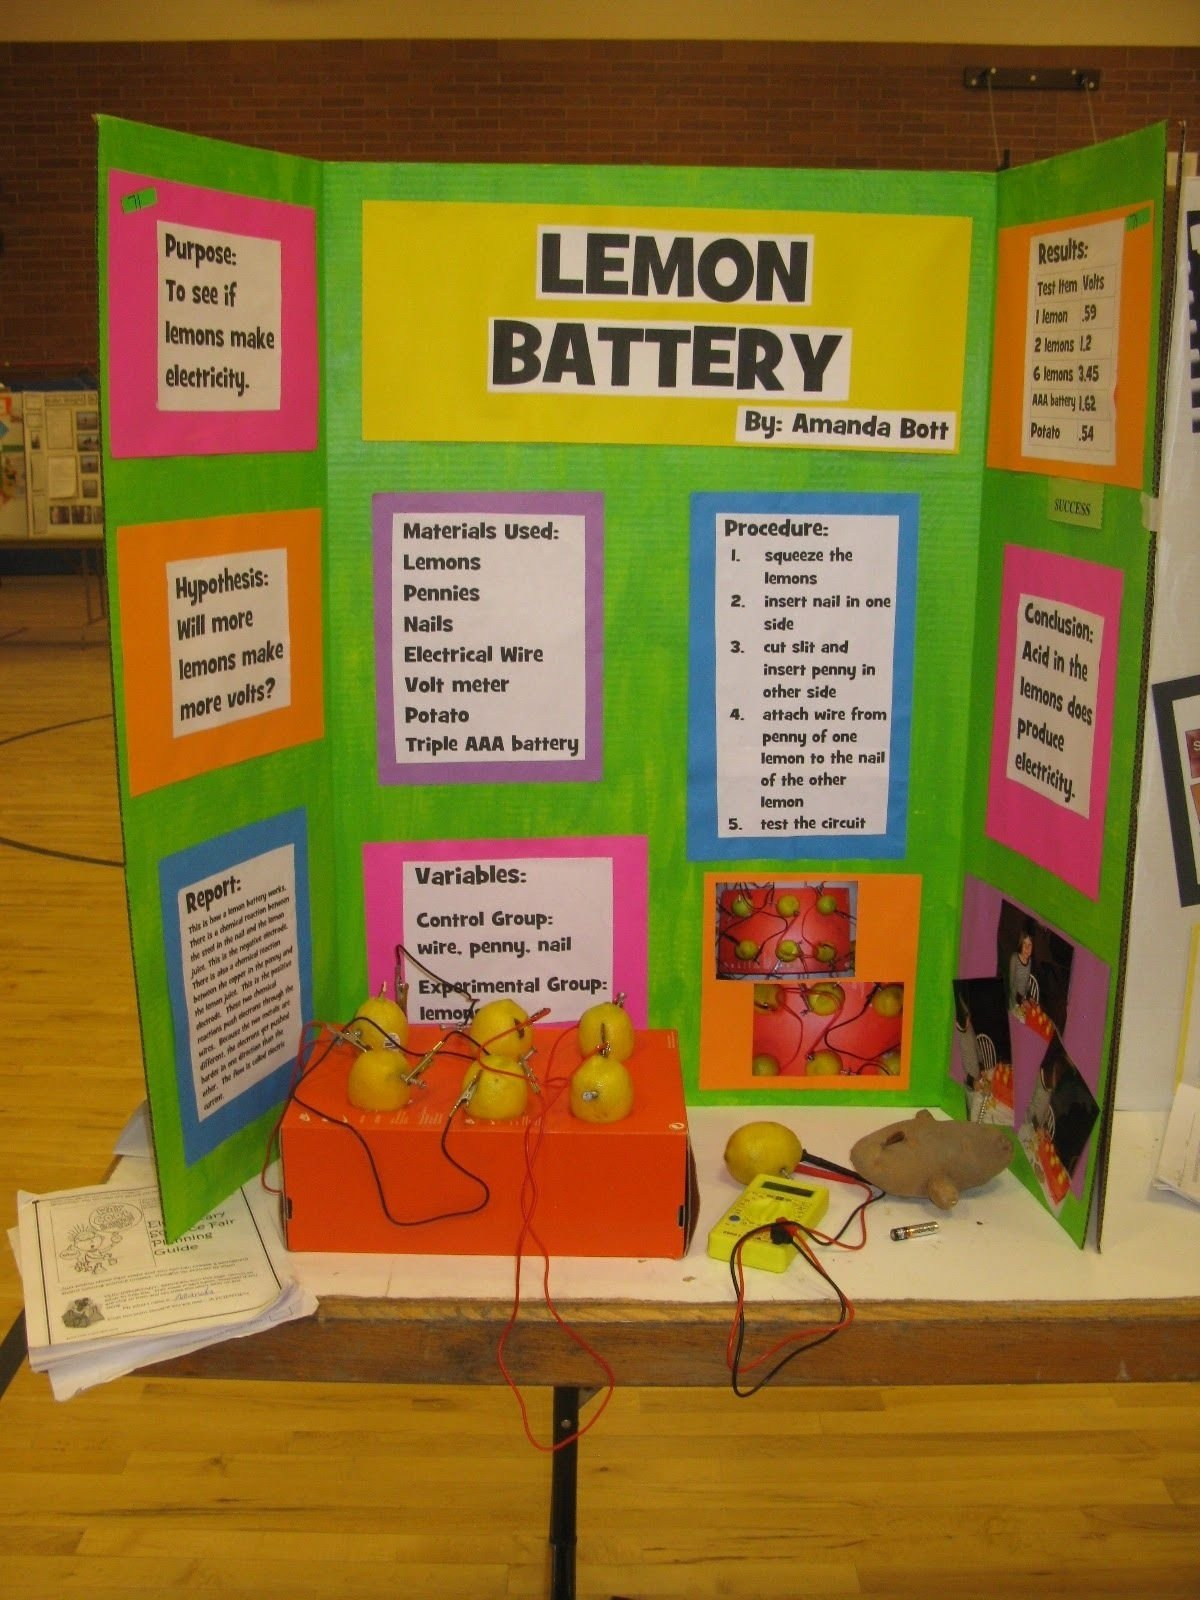 10 Wonderful Science Fair Projects Ideas For 4Th Grade the science of my life updated declo science fair with newspaper 43 2021